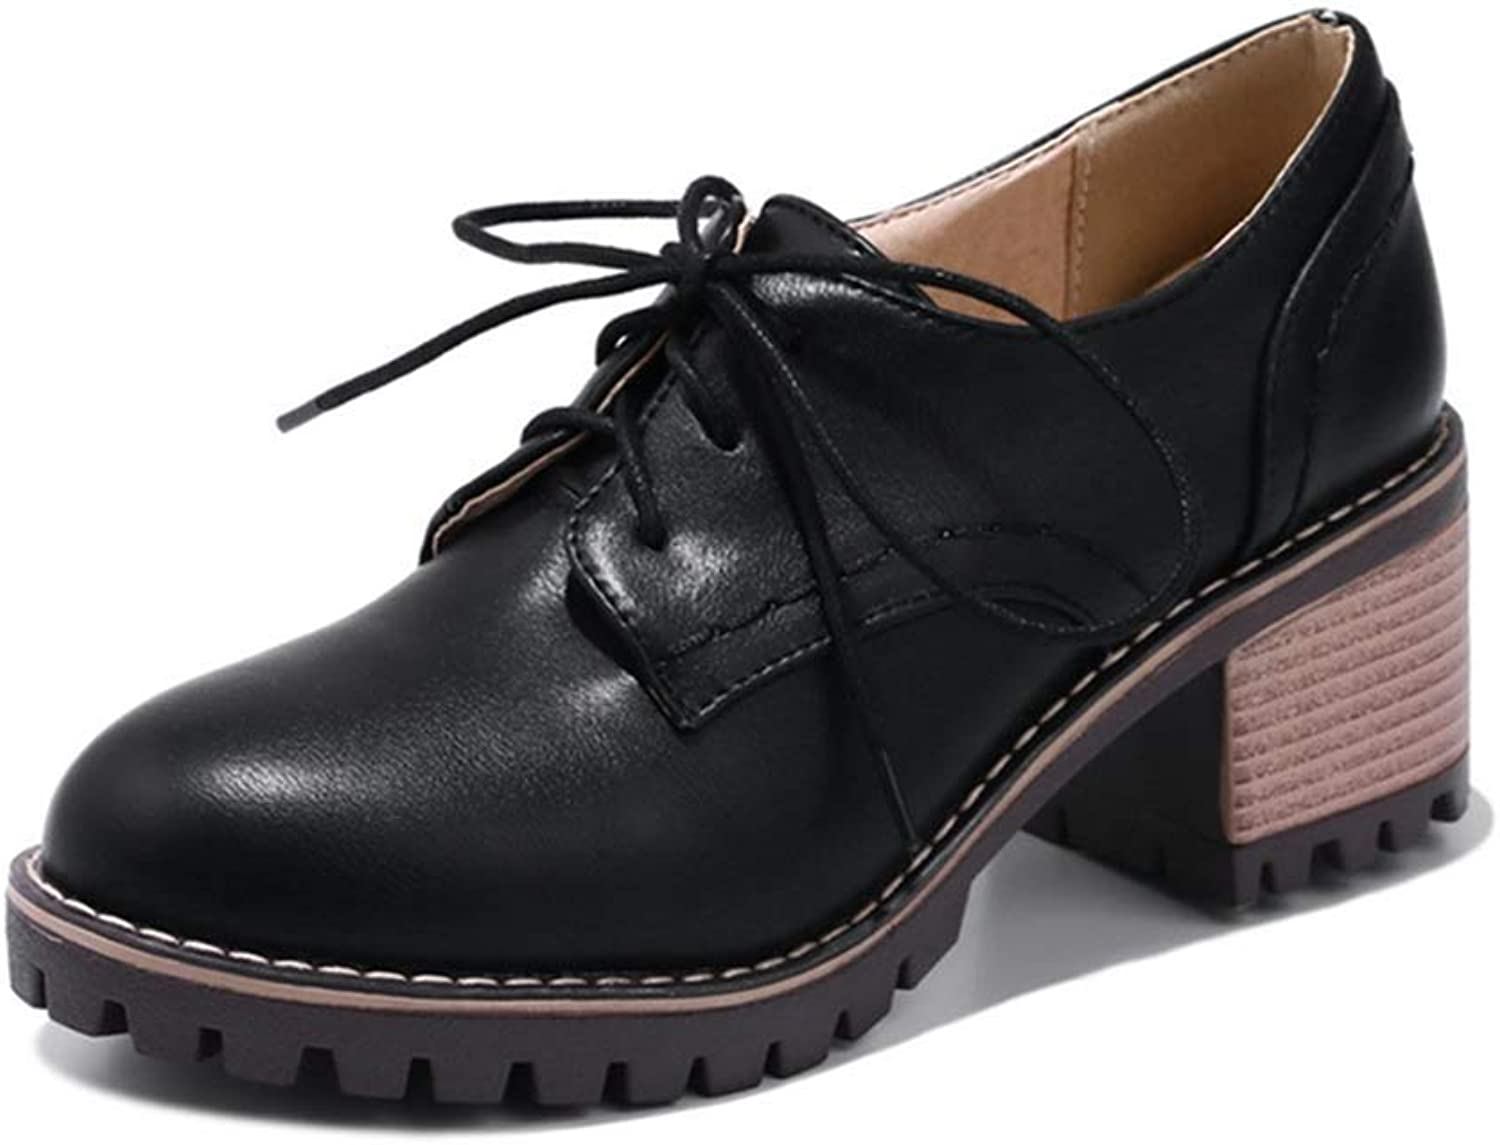 Elsa Wilcox Women Wingtip Chunky Mid Heel Vintage Dress Oxfords shoes Round Toe Lace Up Platform Oxford Pump